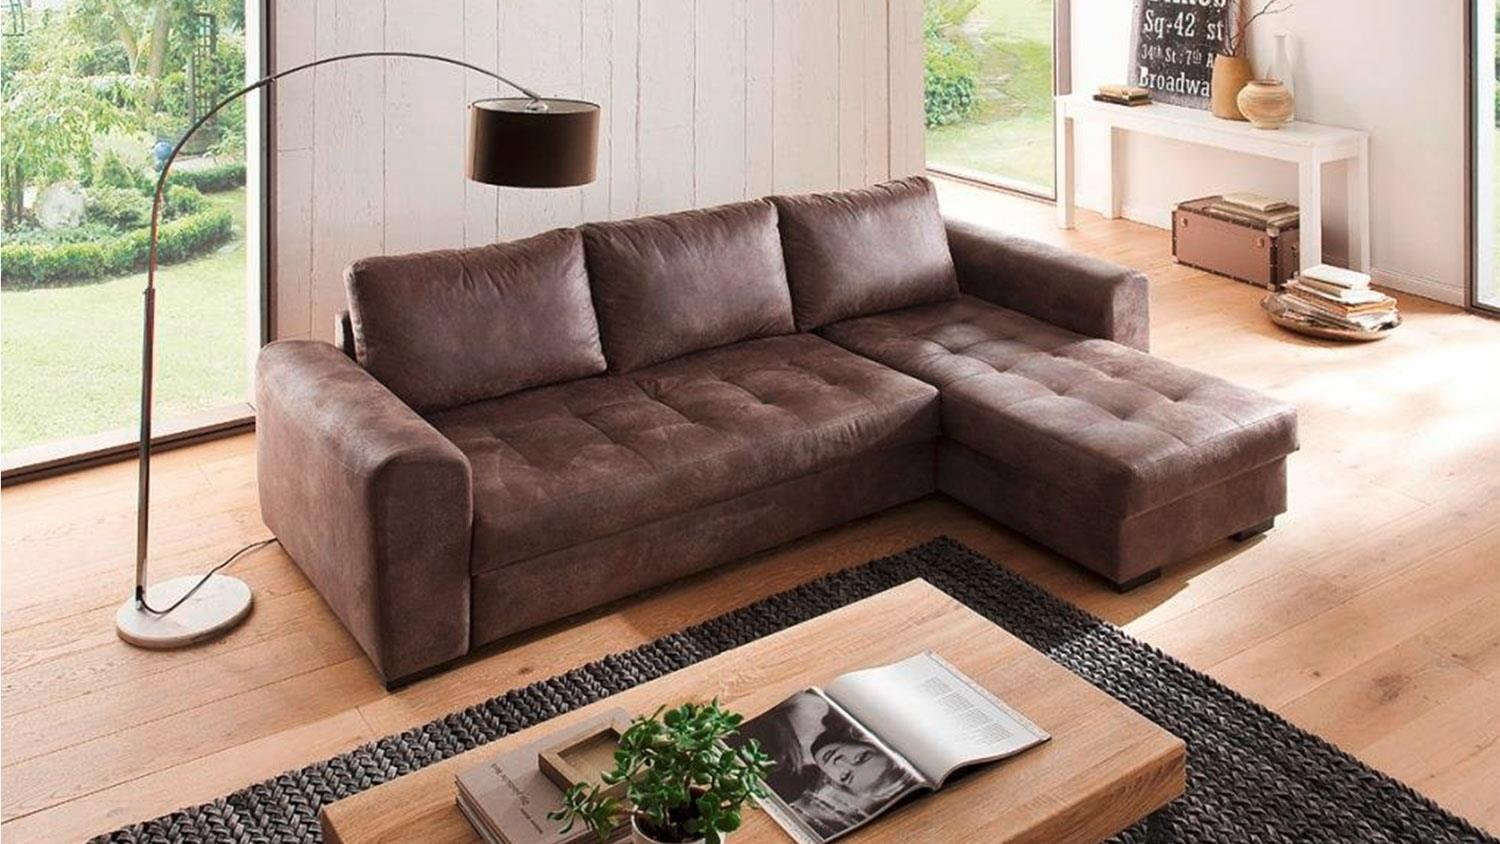 Ecksofa 2 30 X 1 60 Ecksofa Trinidad Tobago Dark Brown Schlaffunktion Bettkasten